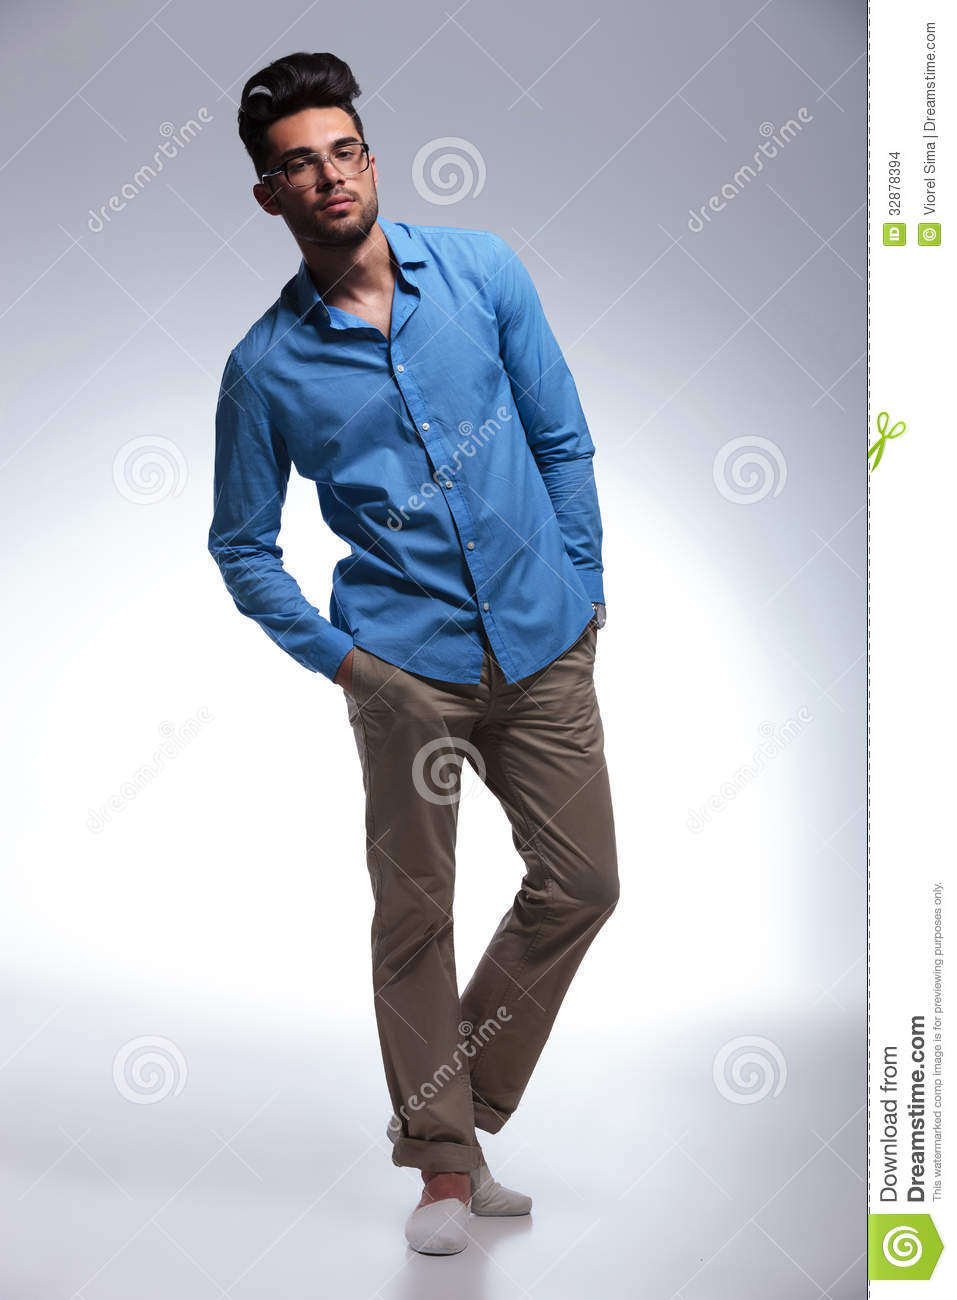 Casual Man Poses With Hands In Pockets Stock Photo - Image